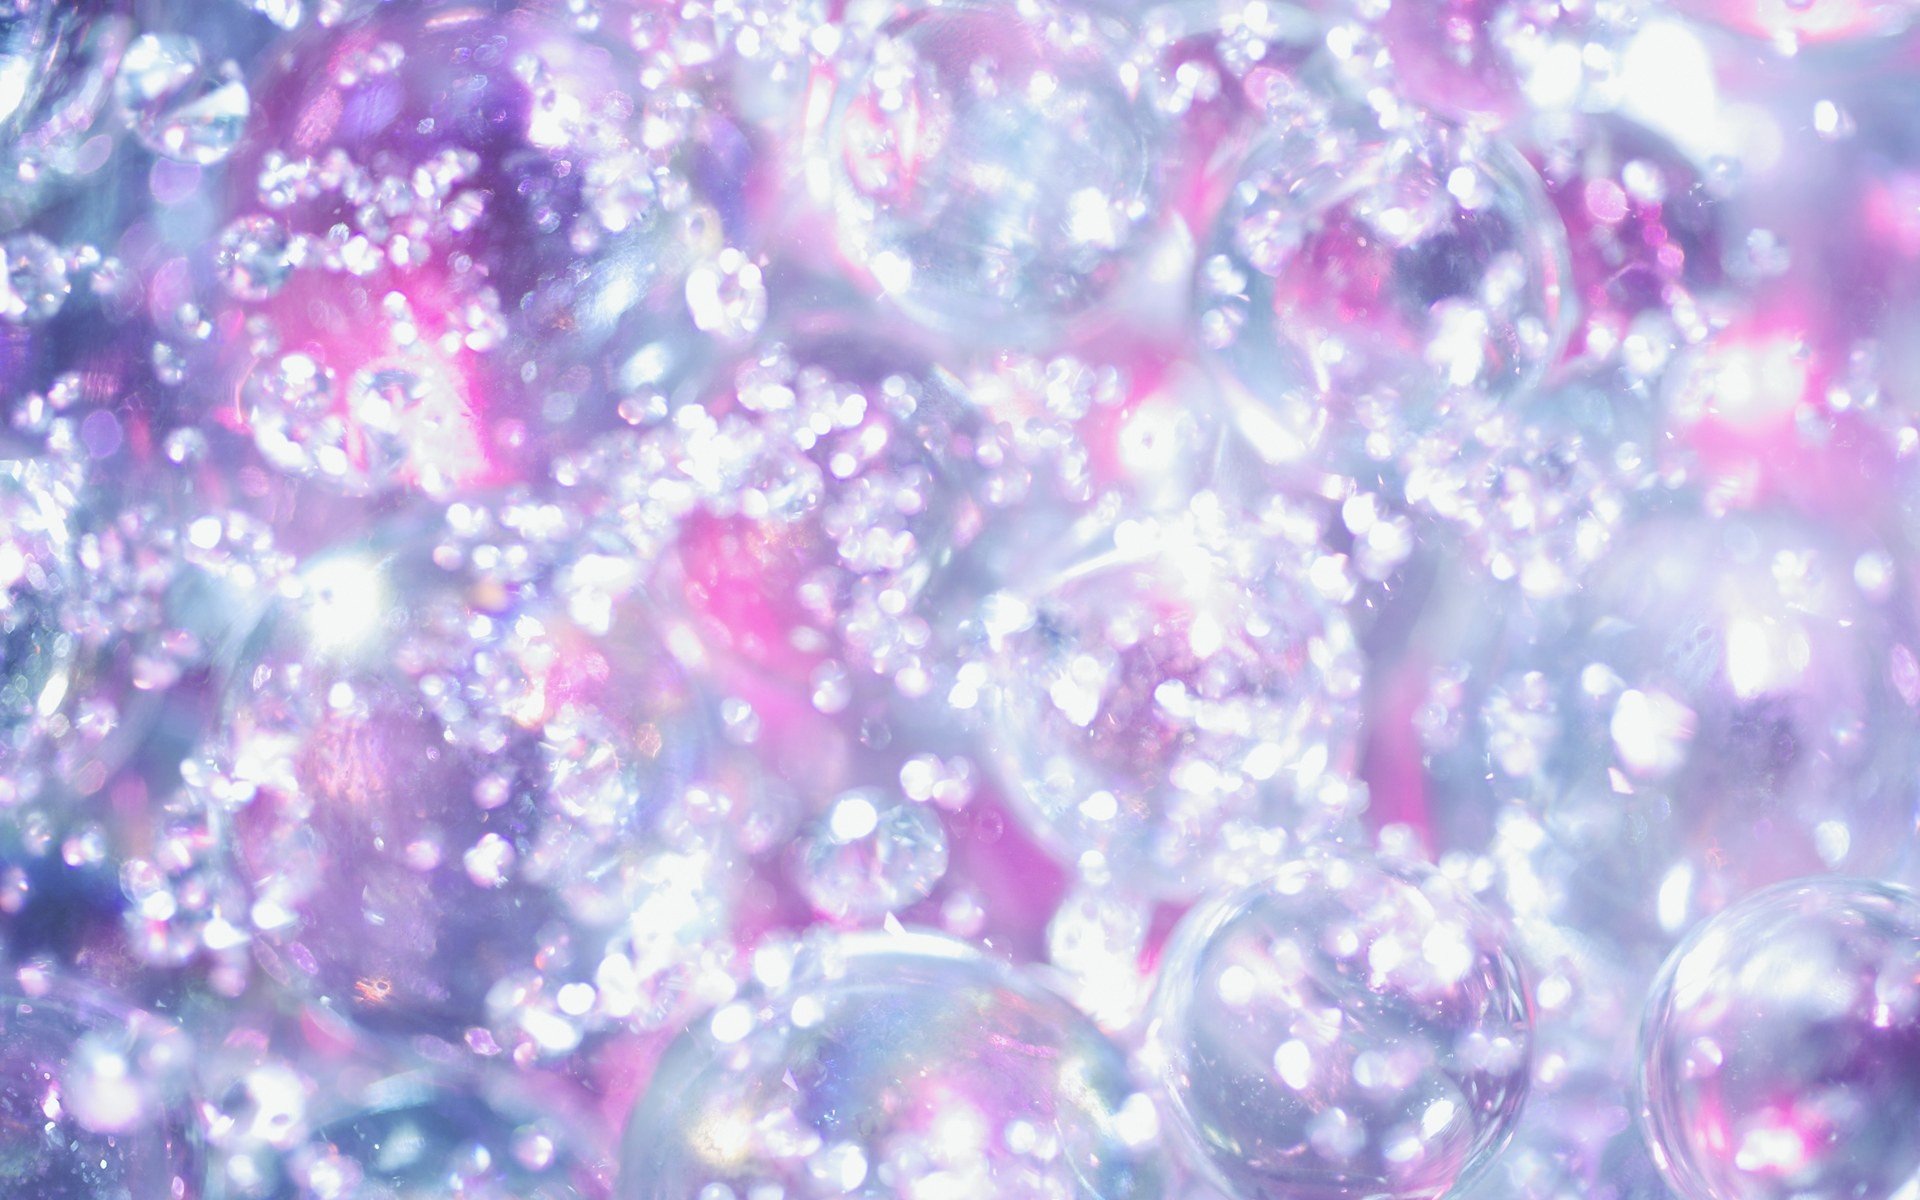 Explore Romantic Backgrounds, Purple Backgrounds, and more!